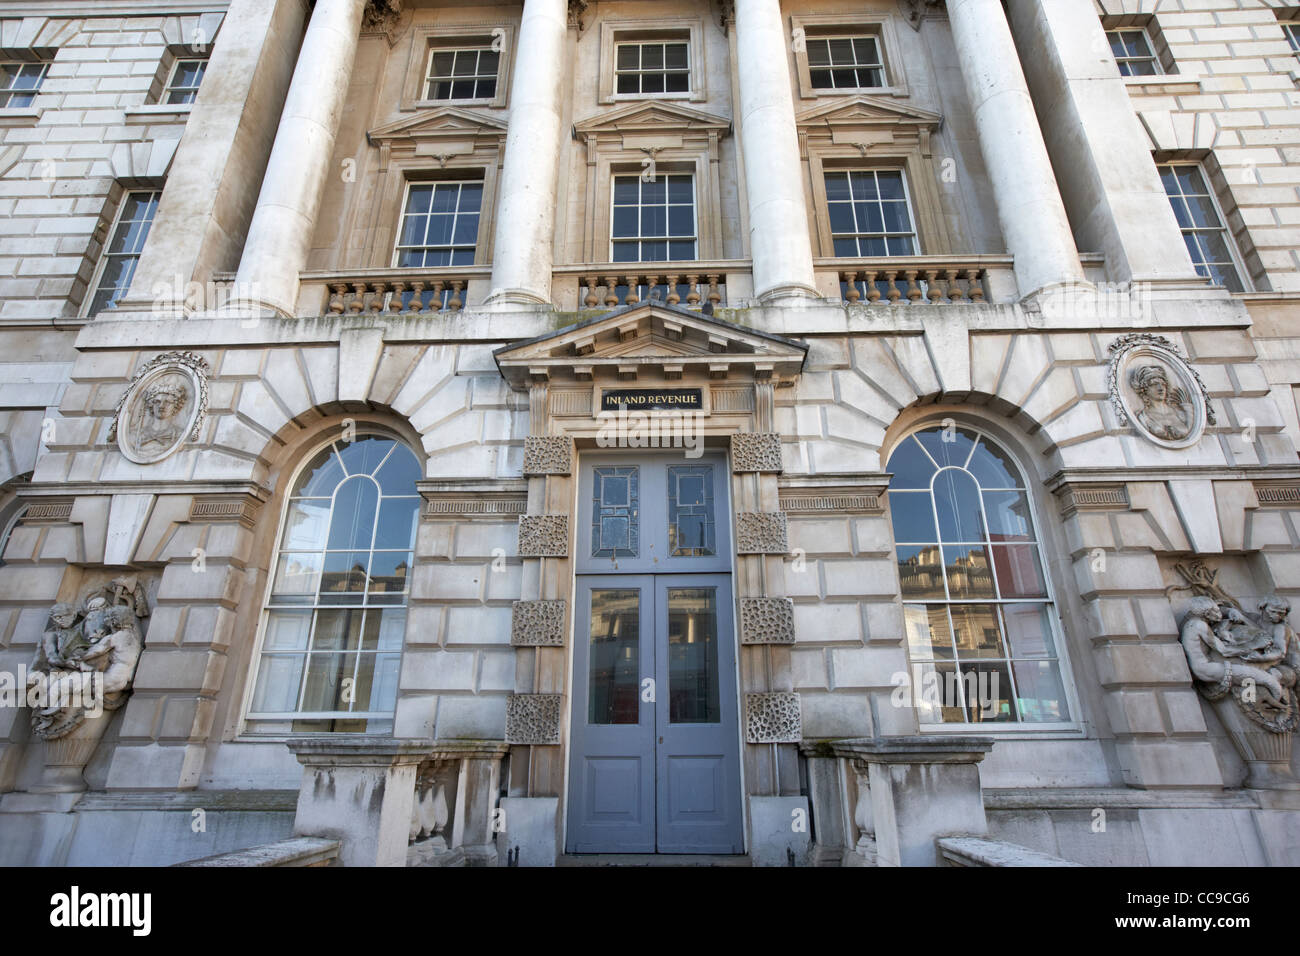 inland revenue doorway inside somerset house London England UK United kingdom - Stock Image